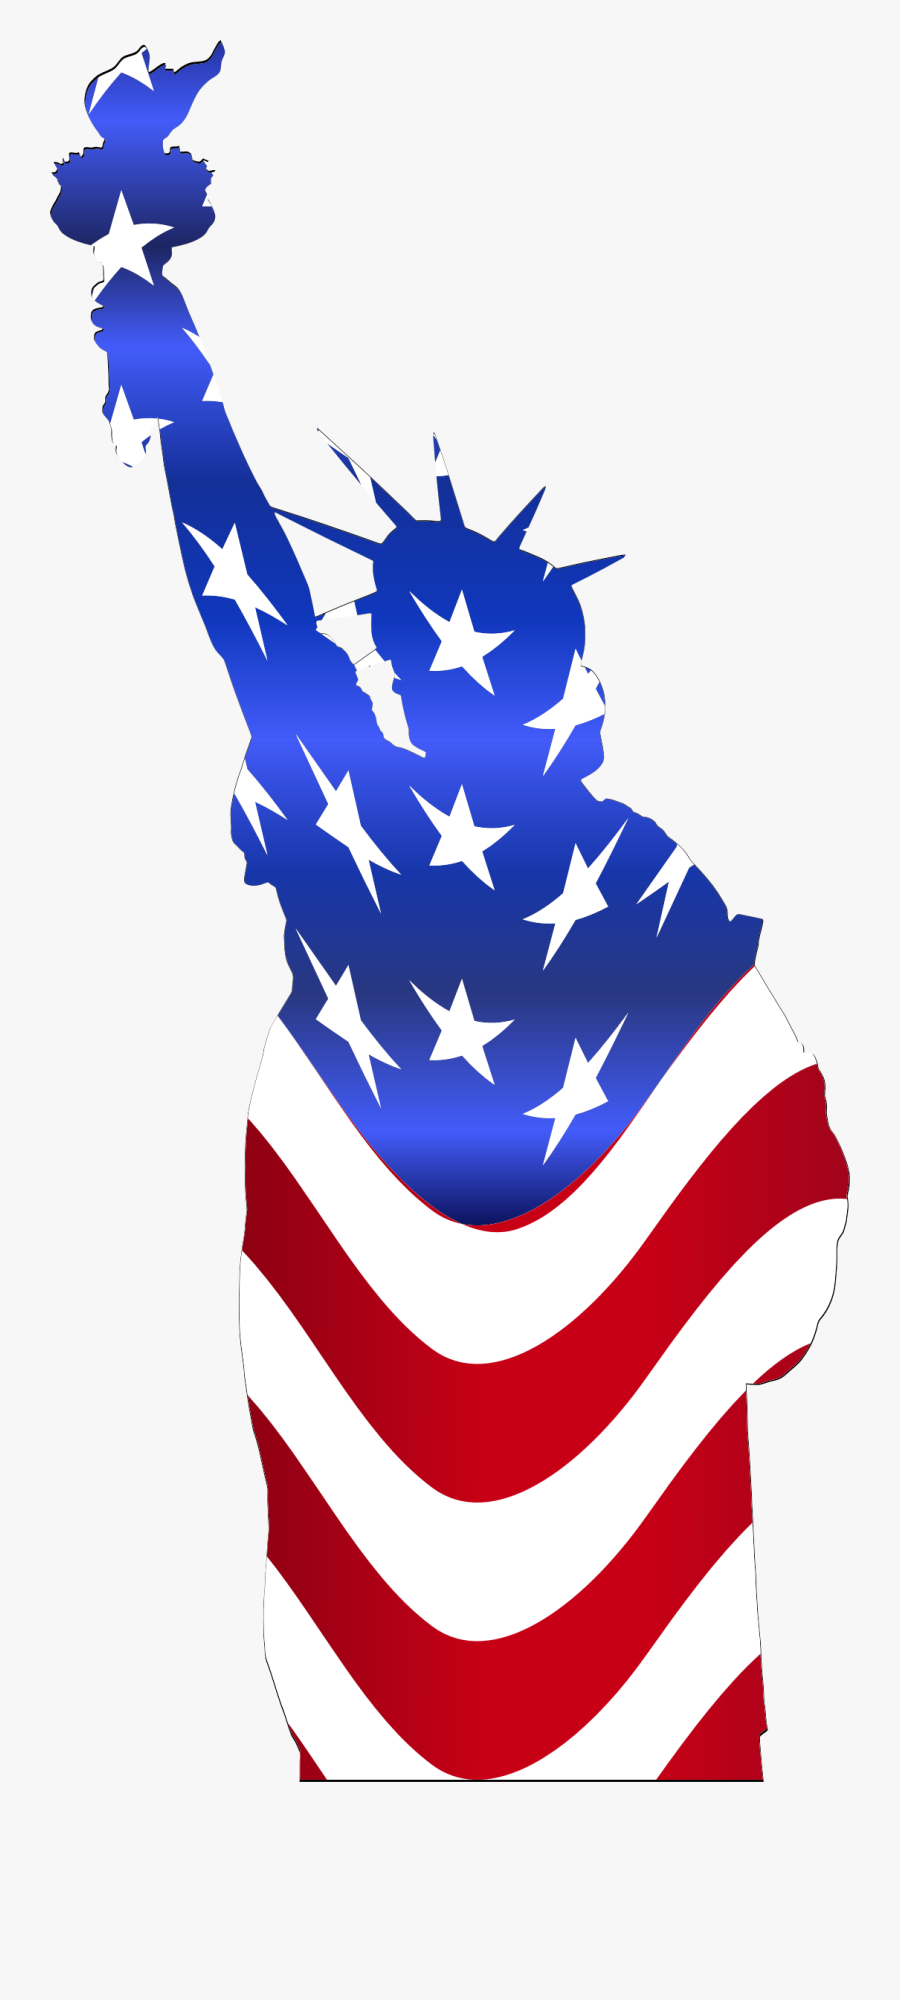 Of Flag Big Image - Statue Of Liberty Usa Clipart, Transparent Clipart